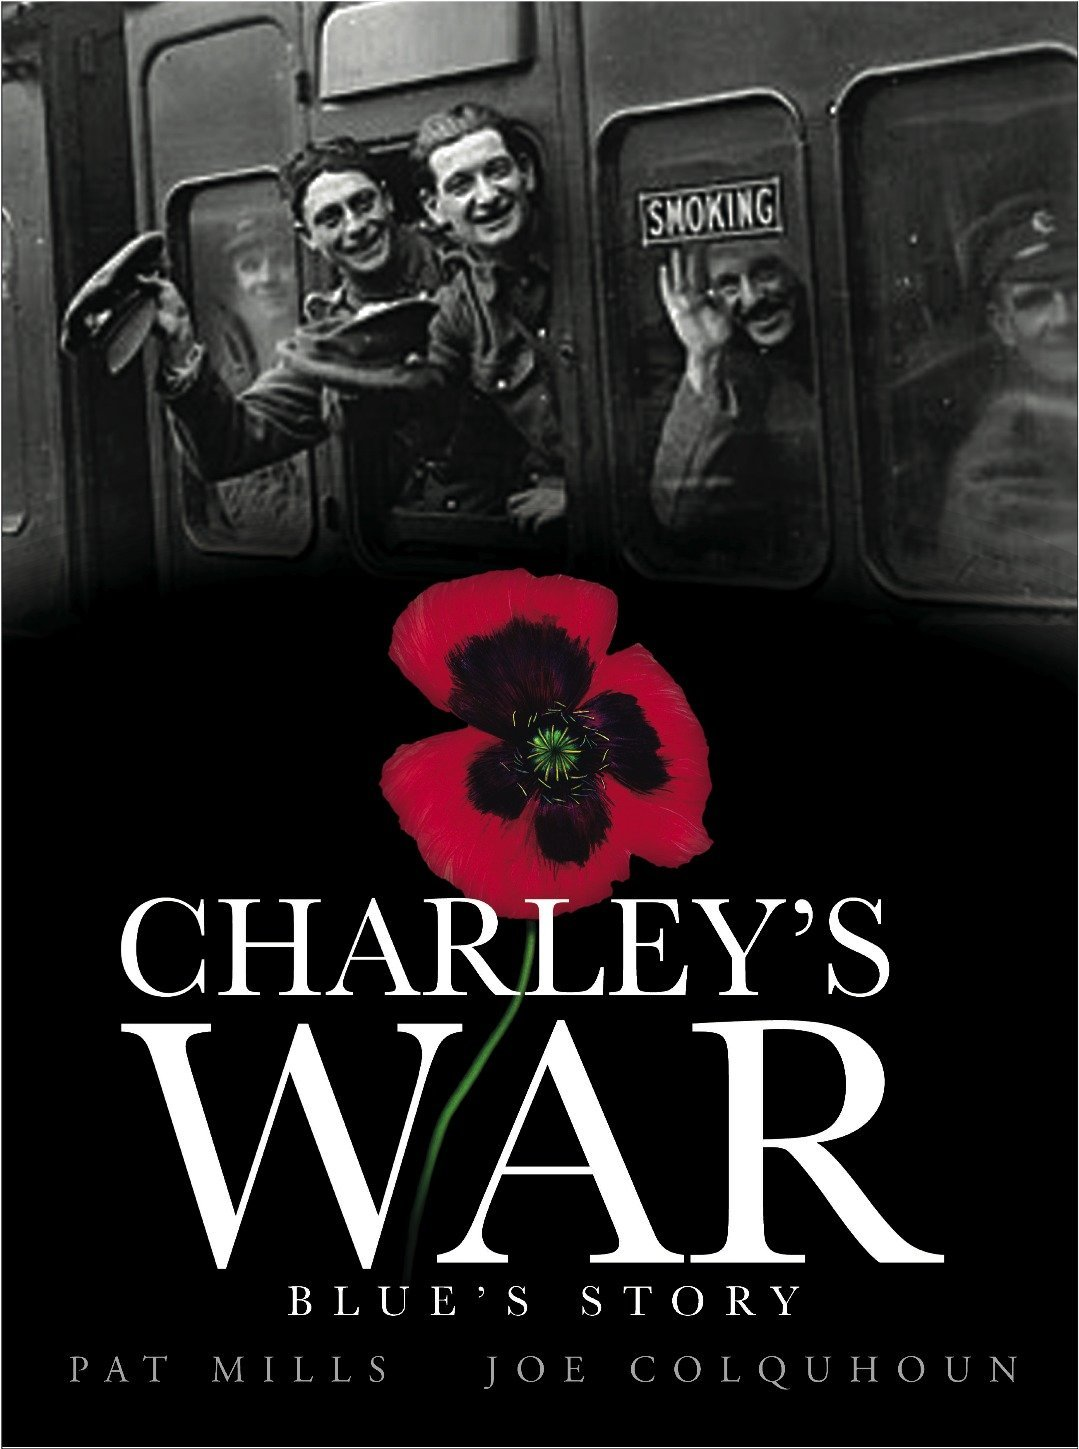 Download Charley's War (Vol. 4): Blue's Story (v. 4) PDF